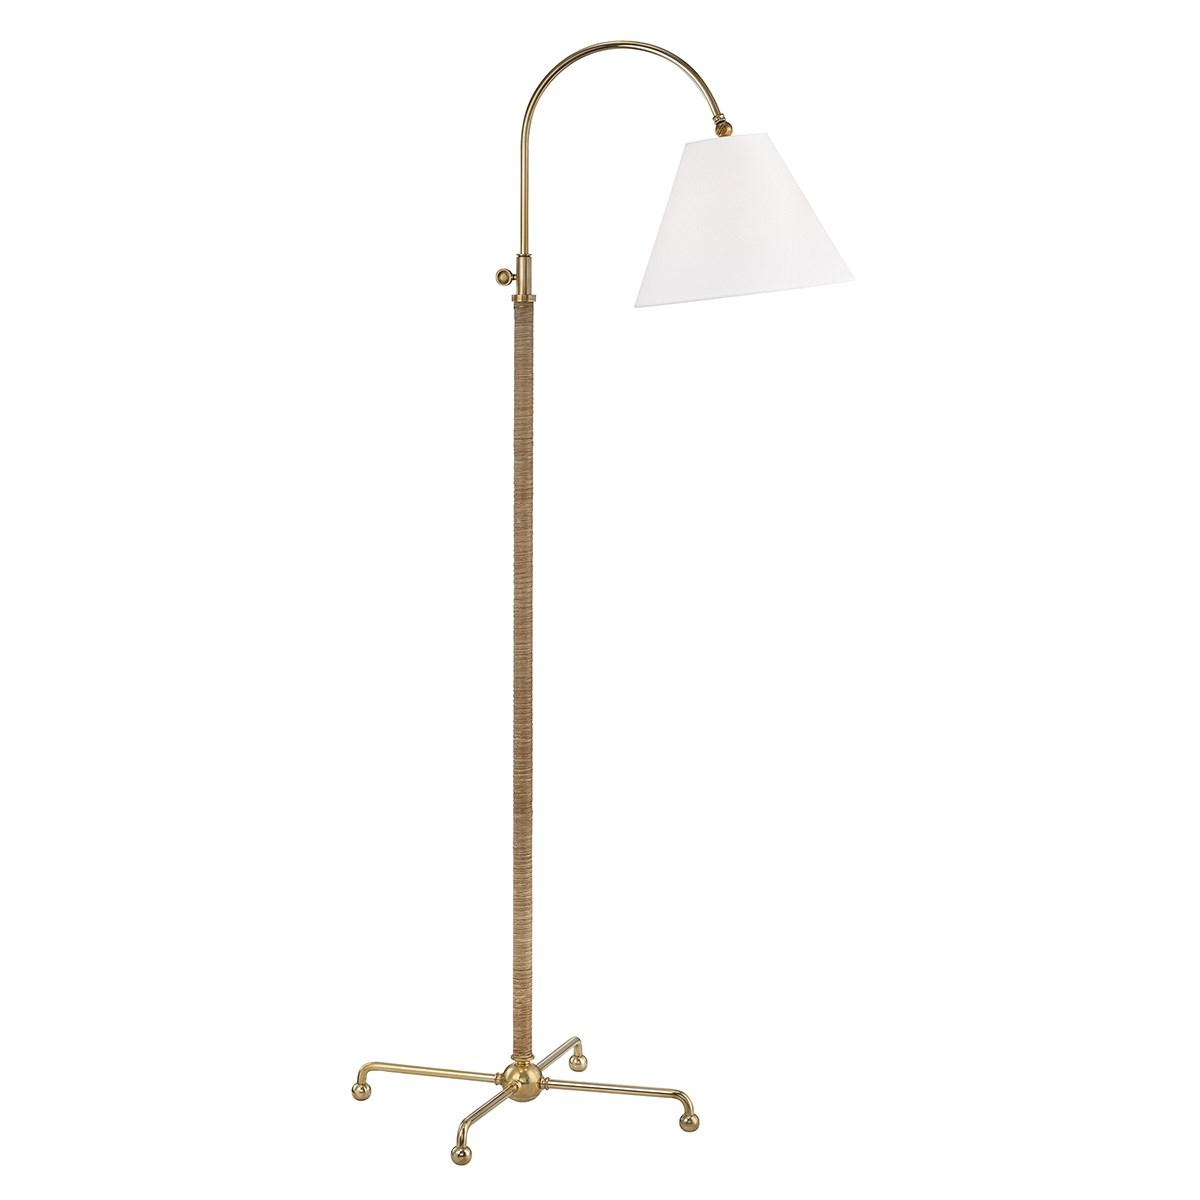 """Width/Diameter 30.50"""" Height 62.25"""" Extension 25.00"""" Backplate/Canopy/Base 21.00"""" Shade Material linen Designer mark d. sikes Number of Lamps 1 Wattage 75w ea."""